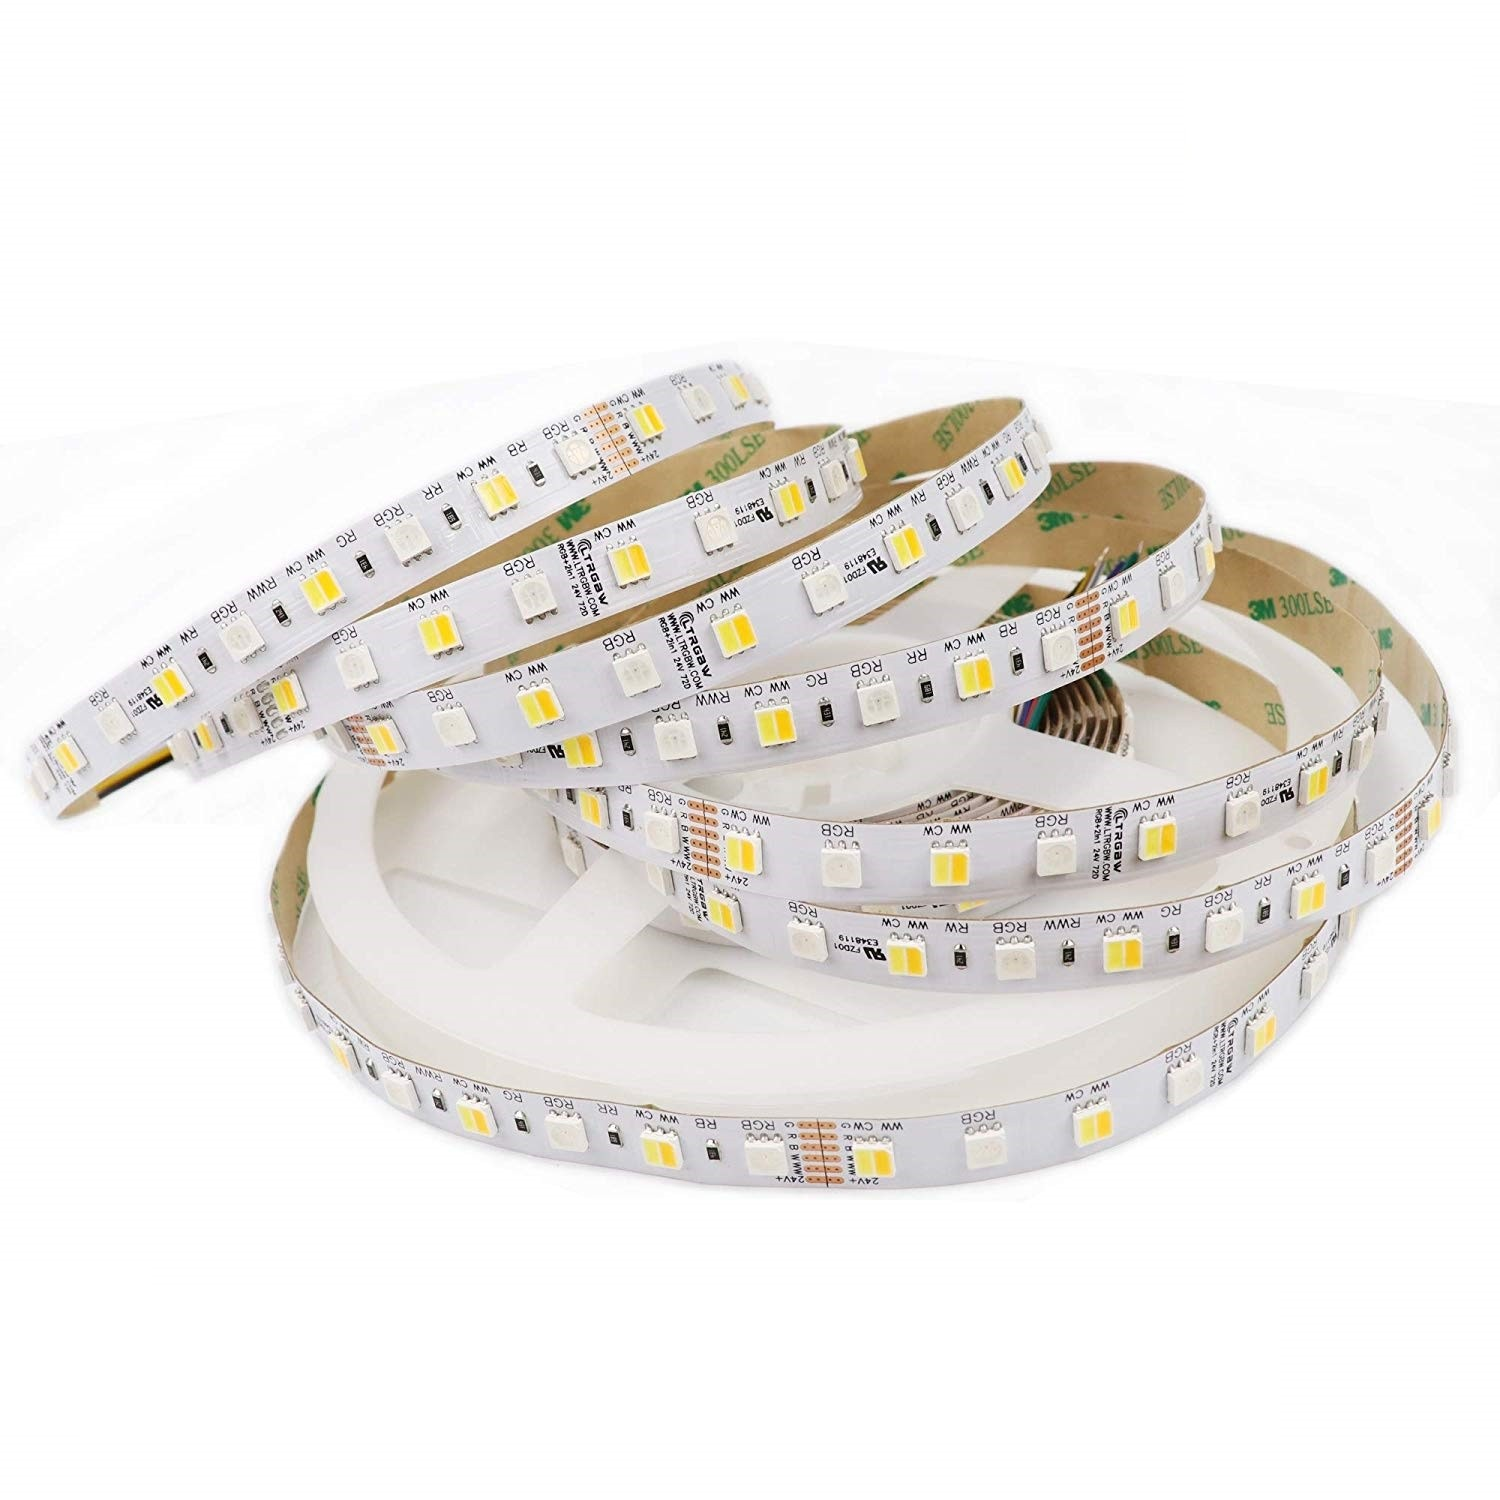 Ruban LED 5050SMD 360LEDs 24V RGB-CCT 2-in-1 Double Blanc RGB-CW-WW RGBW Bande LED Lumineuse 5M